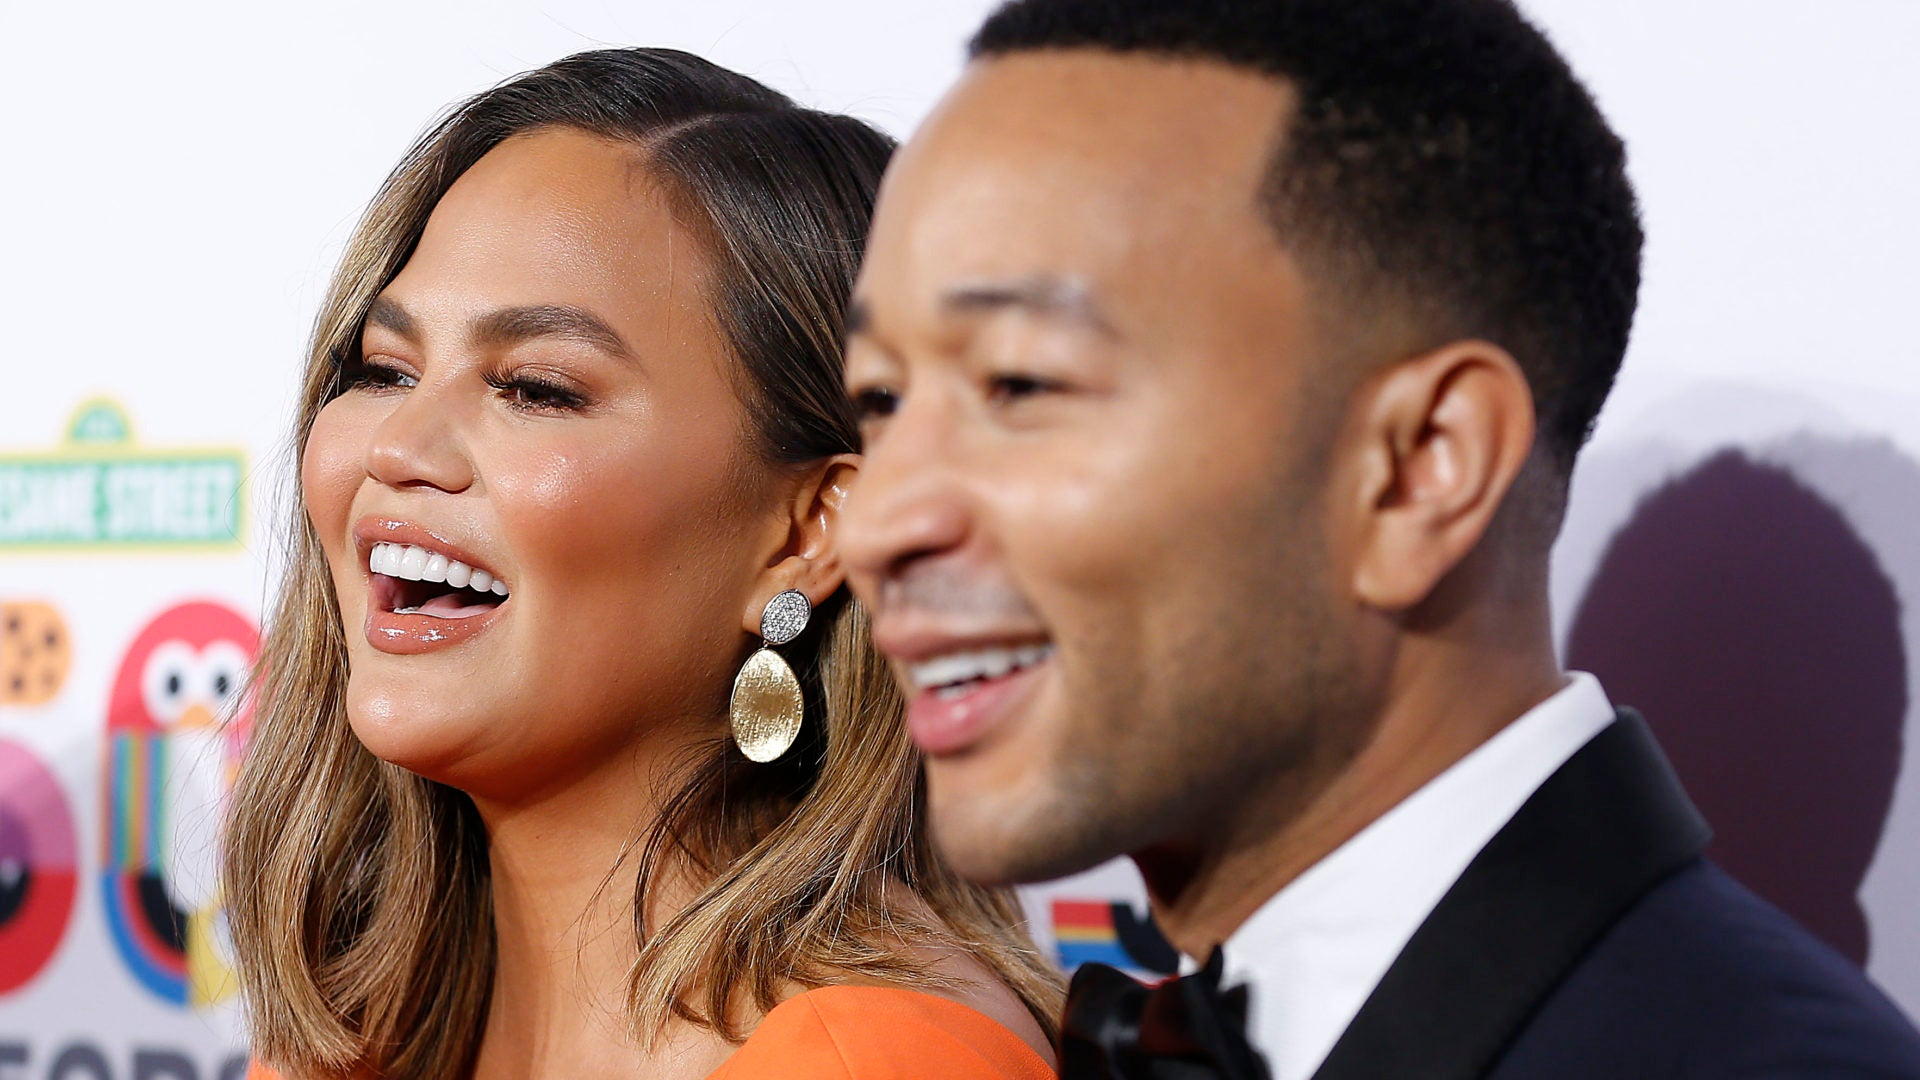 Trump Tries To Come For Chrissy Teigen And John Legend When She Didn't Send For Him